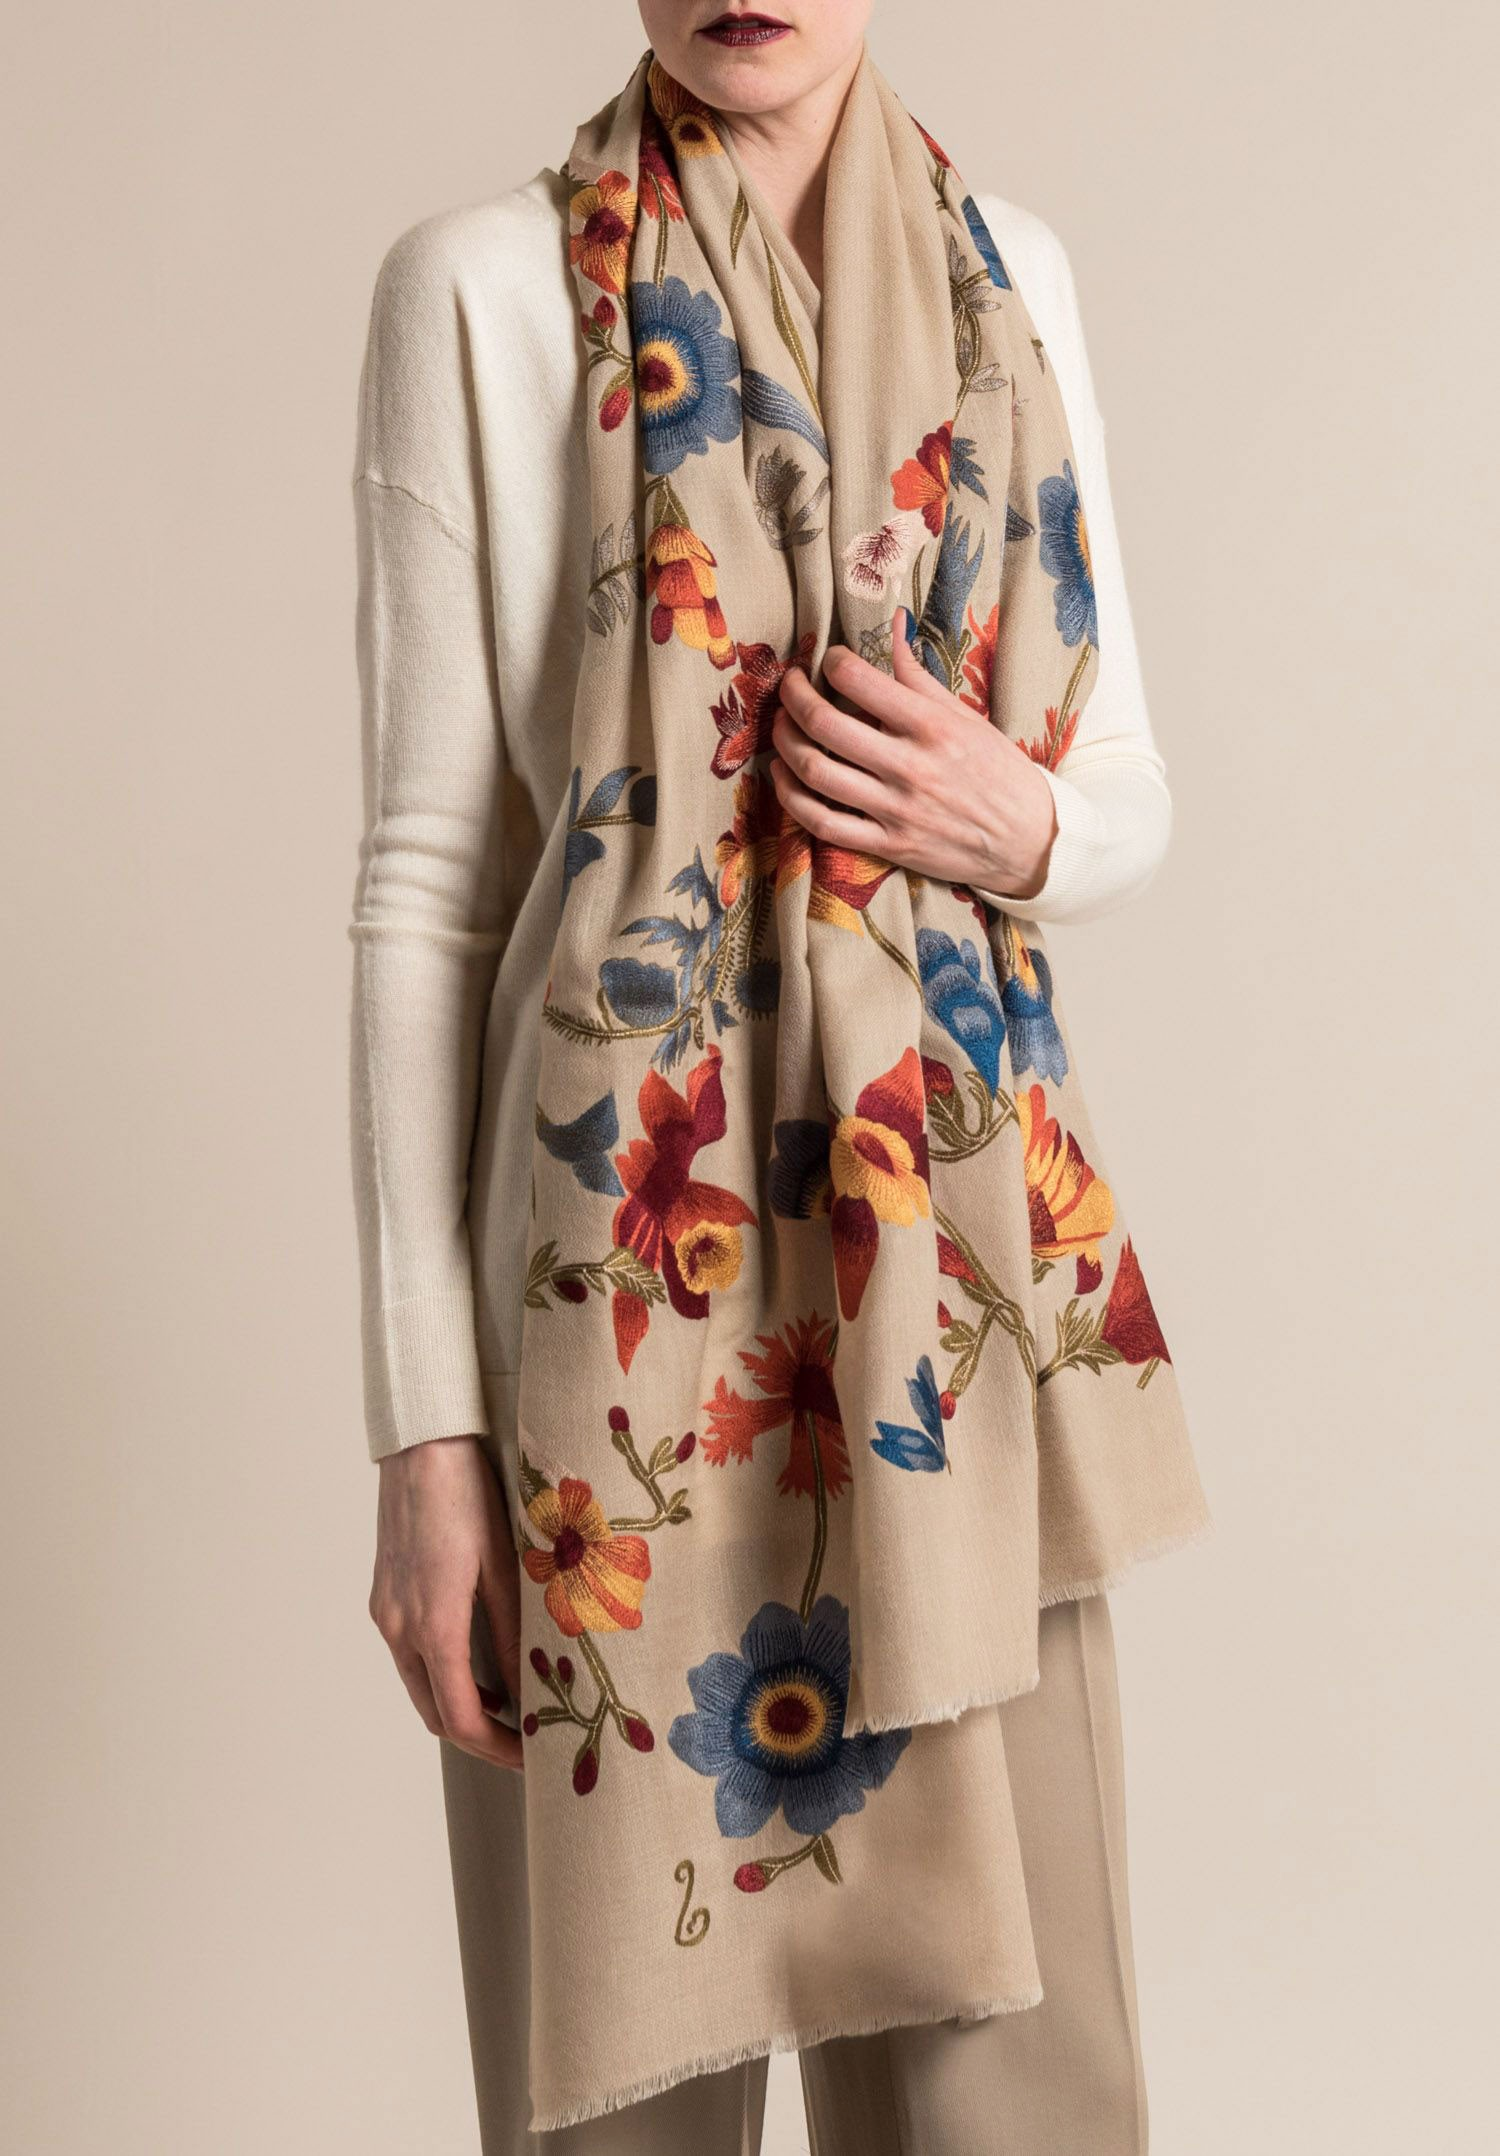 Janavi Cashmere Intricate Floral Embroidery Scarf In Light